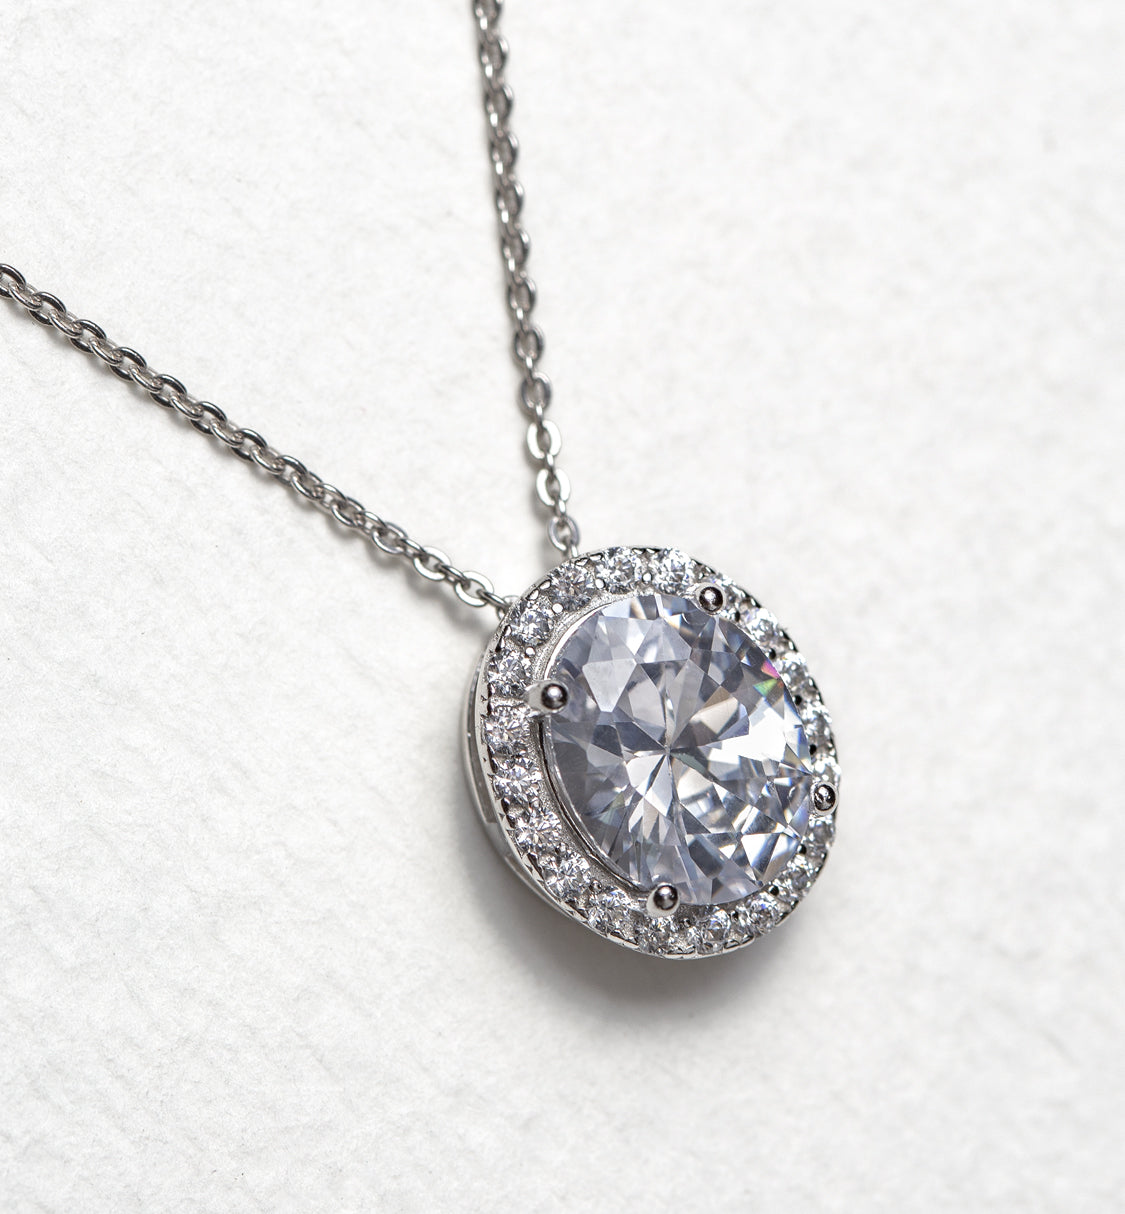 Ovali Halo Pendant Necklace - Amy O. Bridal